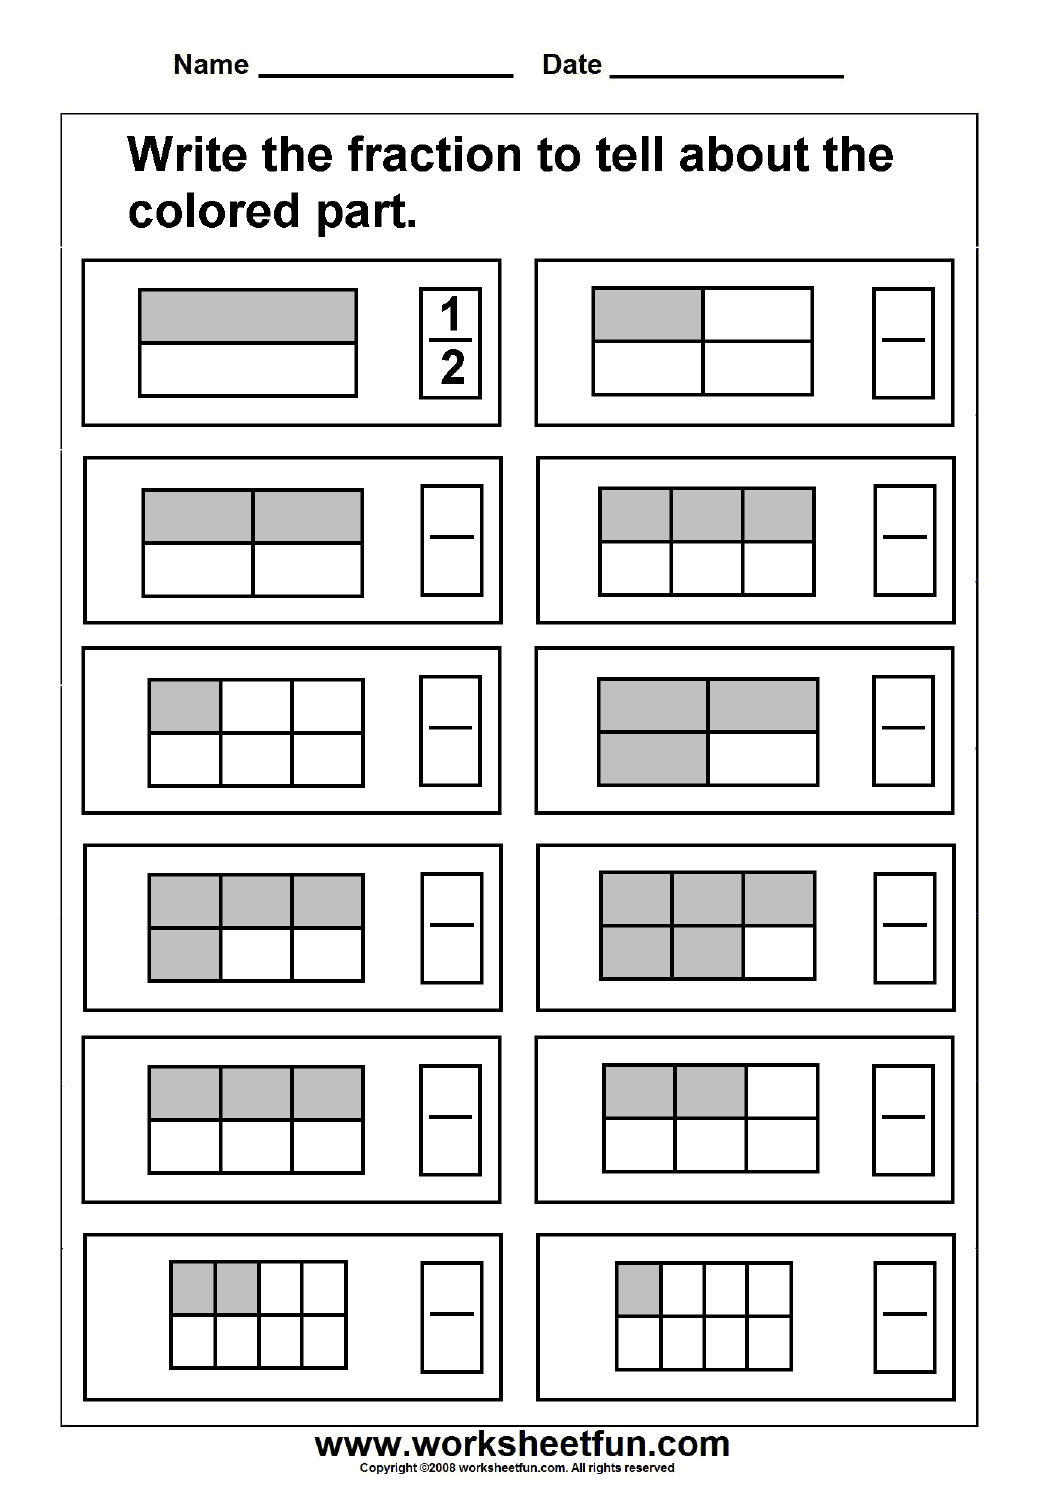 Fraction Model / FREE Printable Worksheets – Worksheetfun